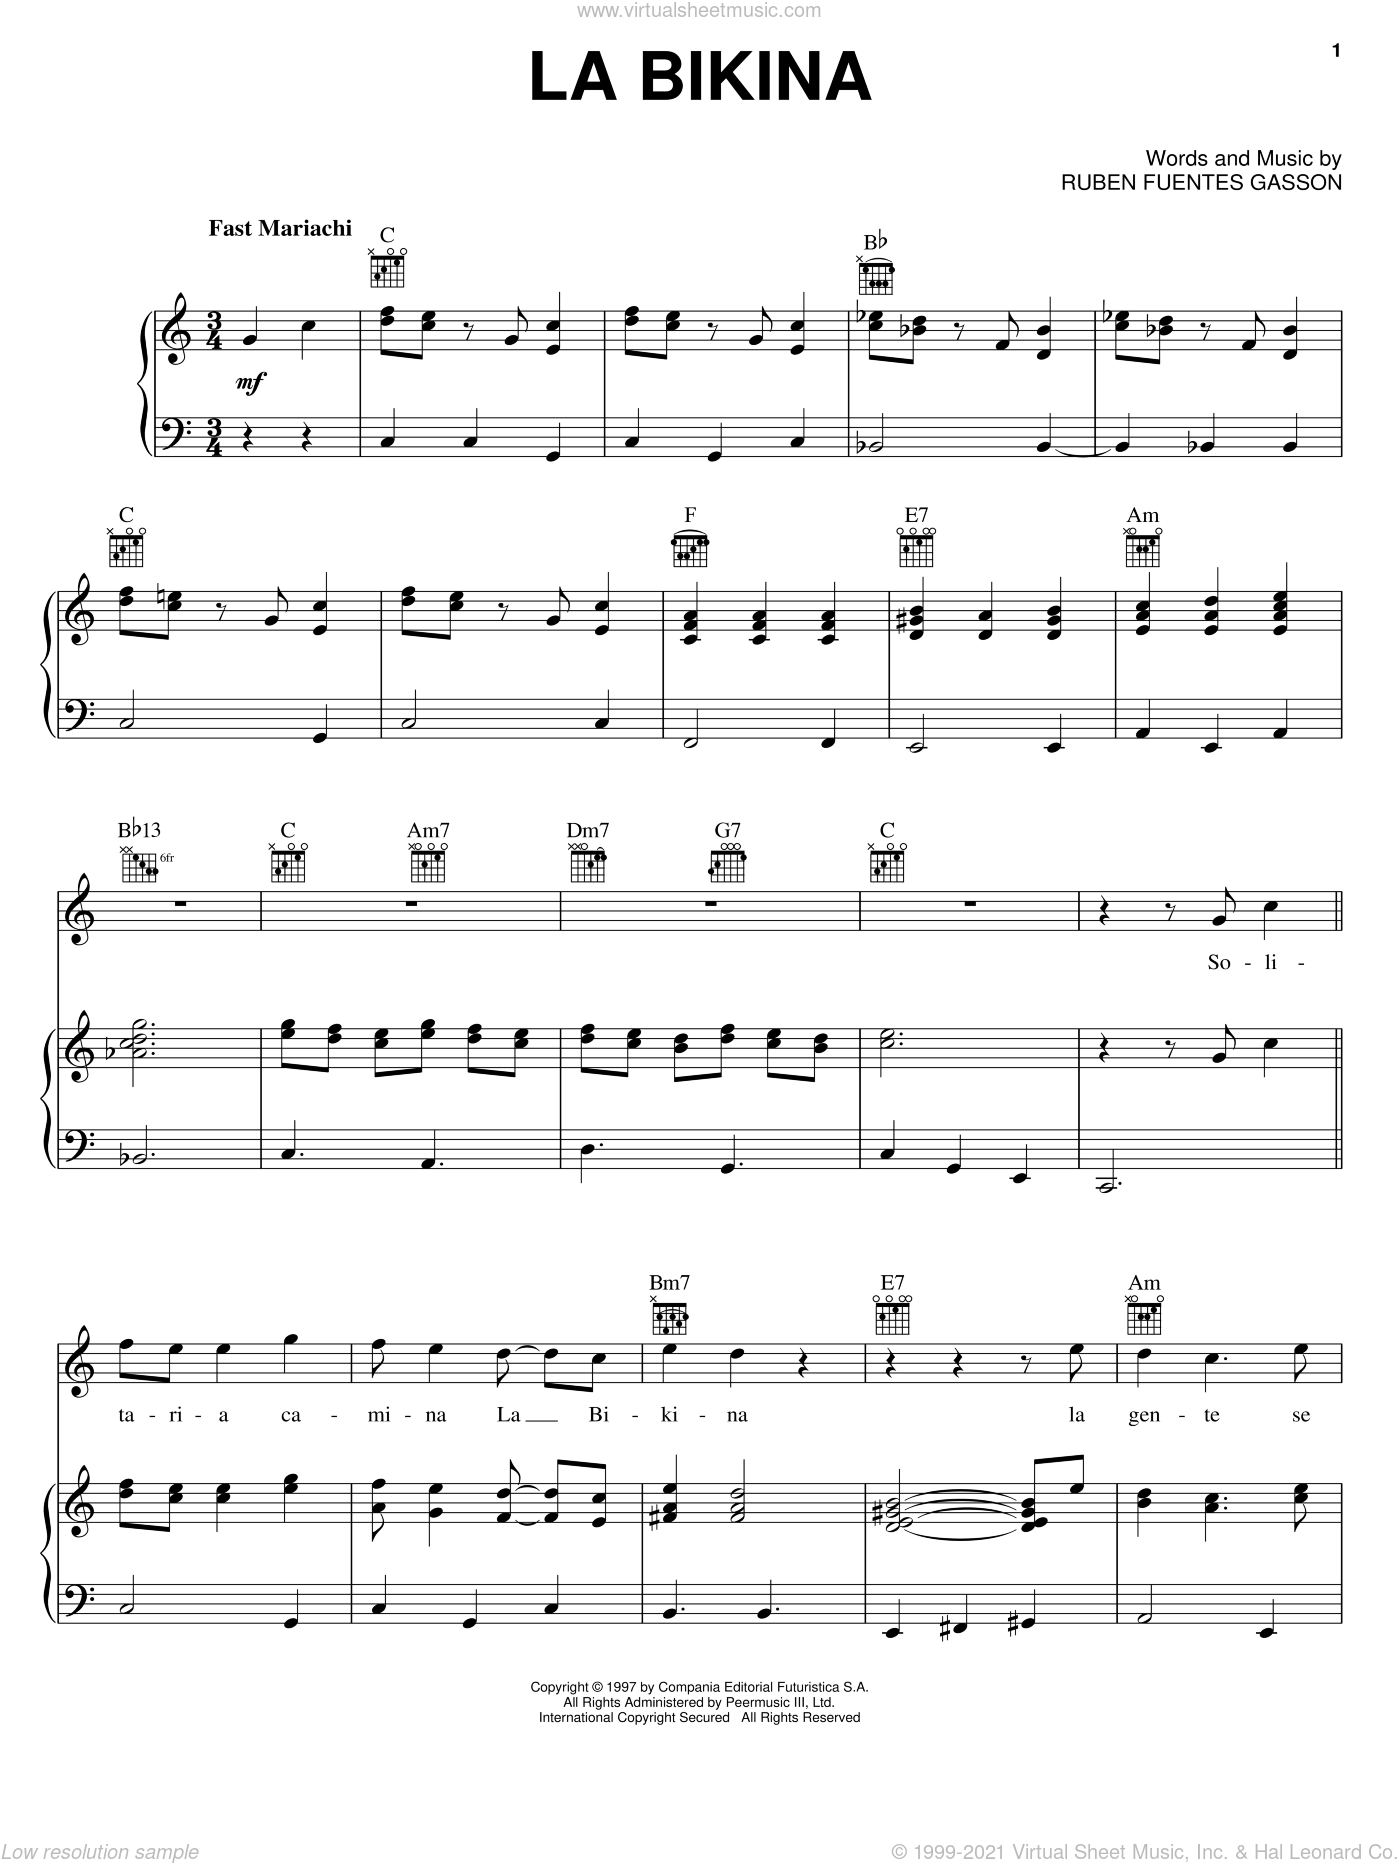 La Bikina sheet music for voice, piano or guitar by Ruben Fuentes Gasson